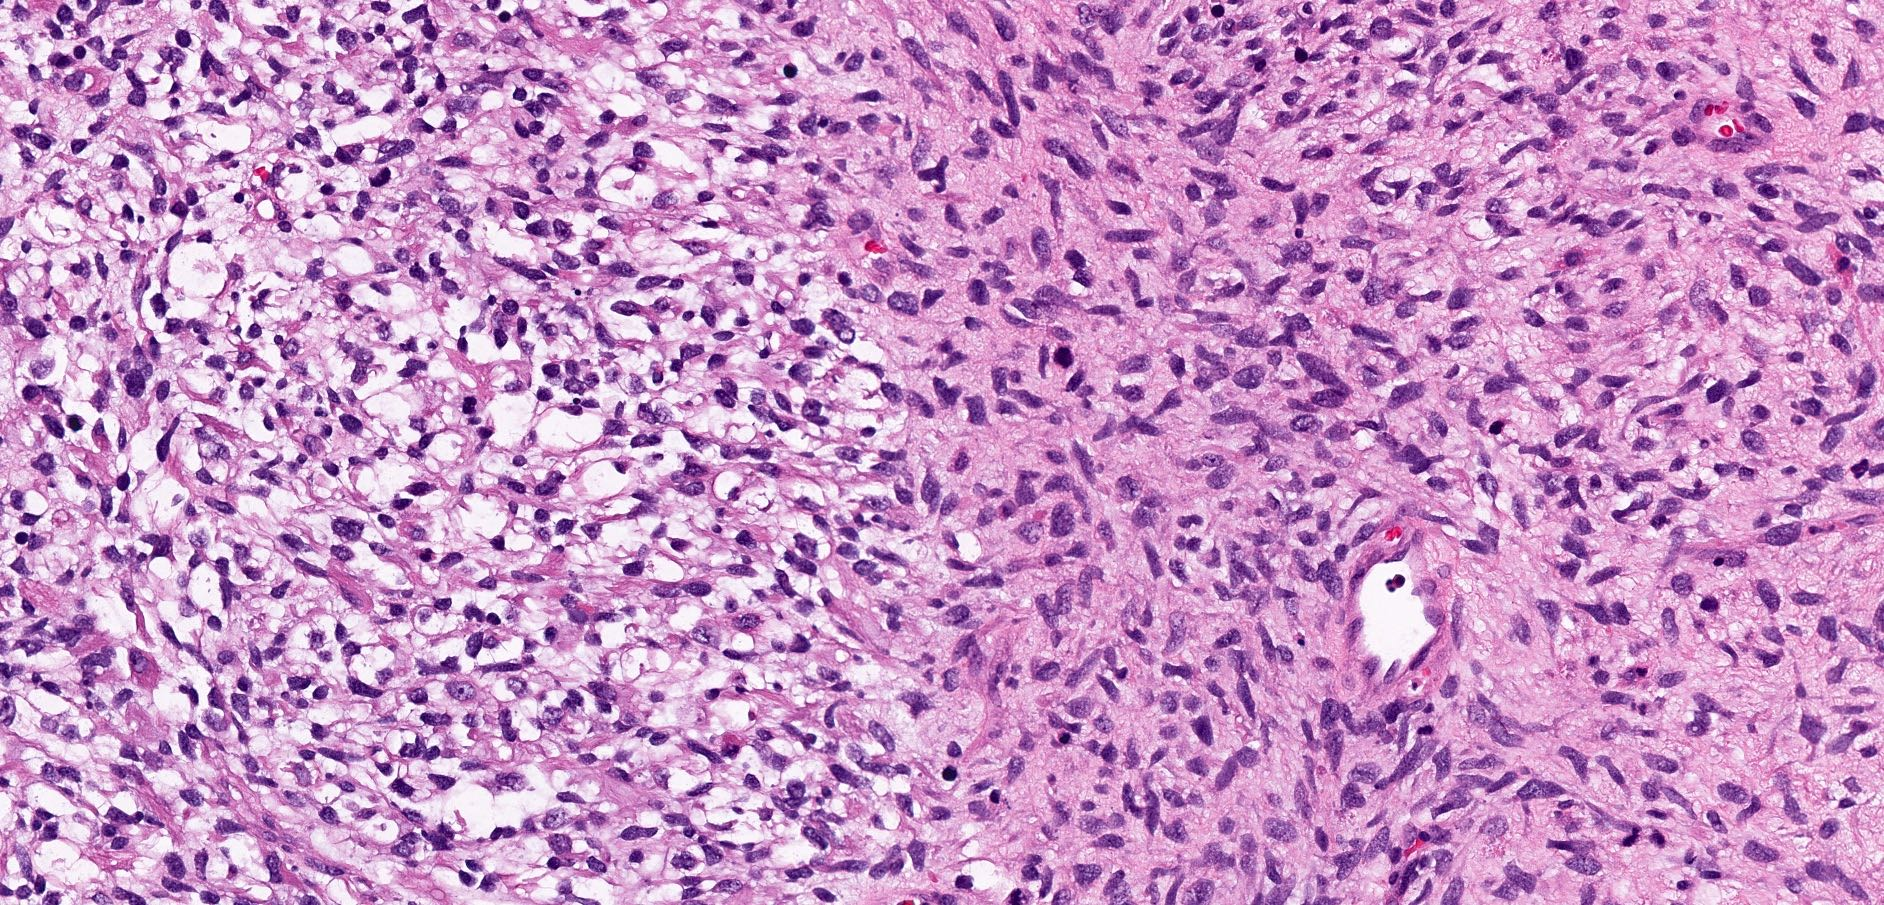 Dedifferentiated solitary fibrous tumor